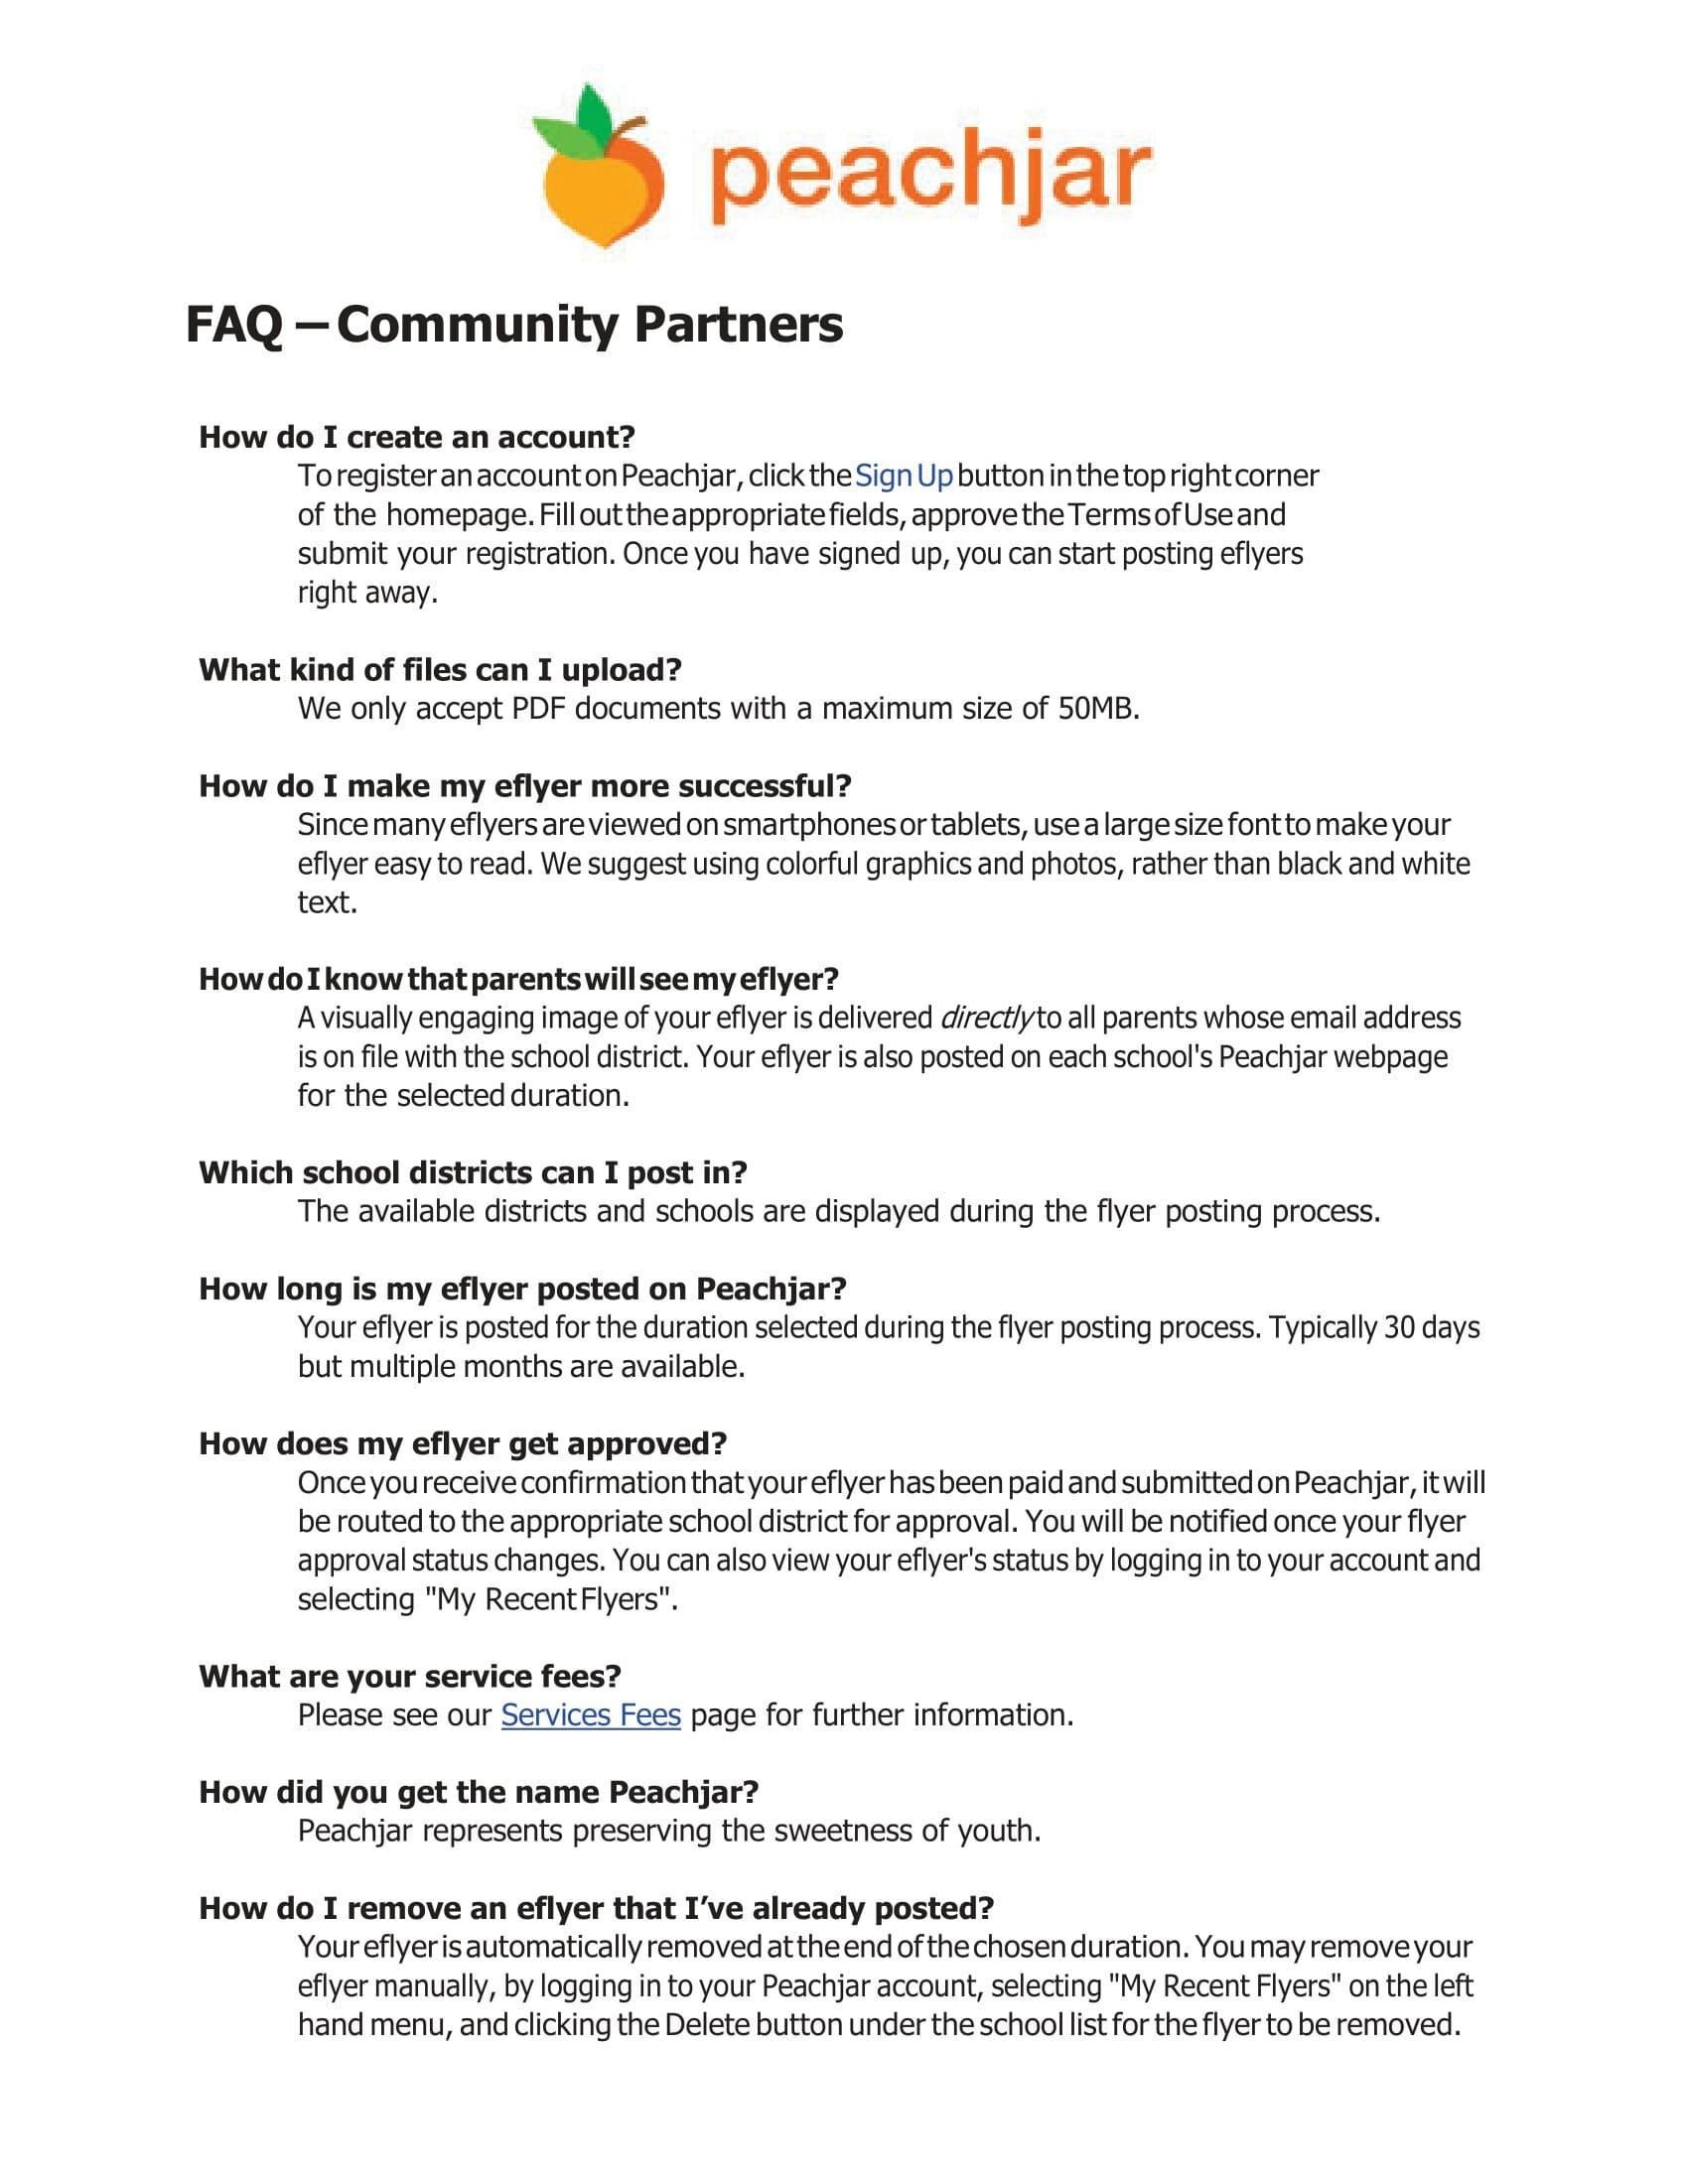 Peachjar FAQs for Community Partners - Part 1